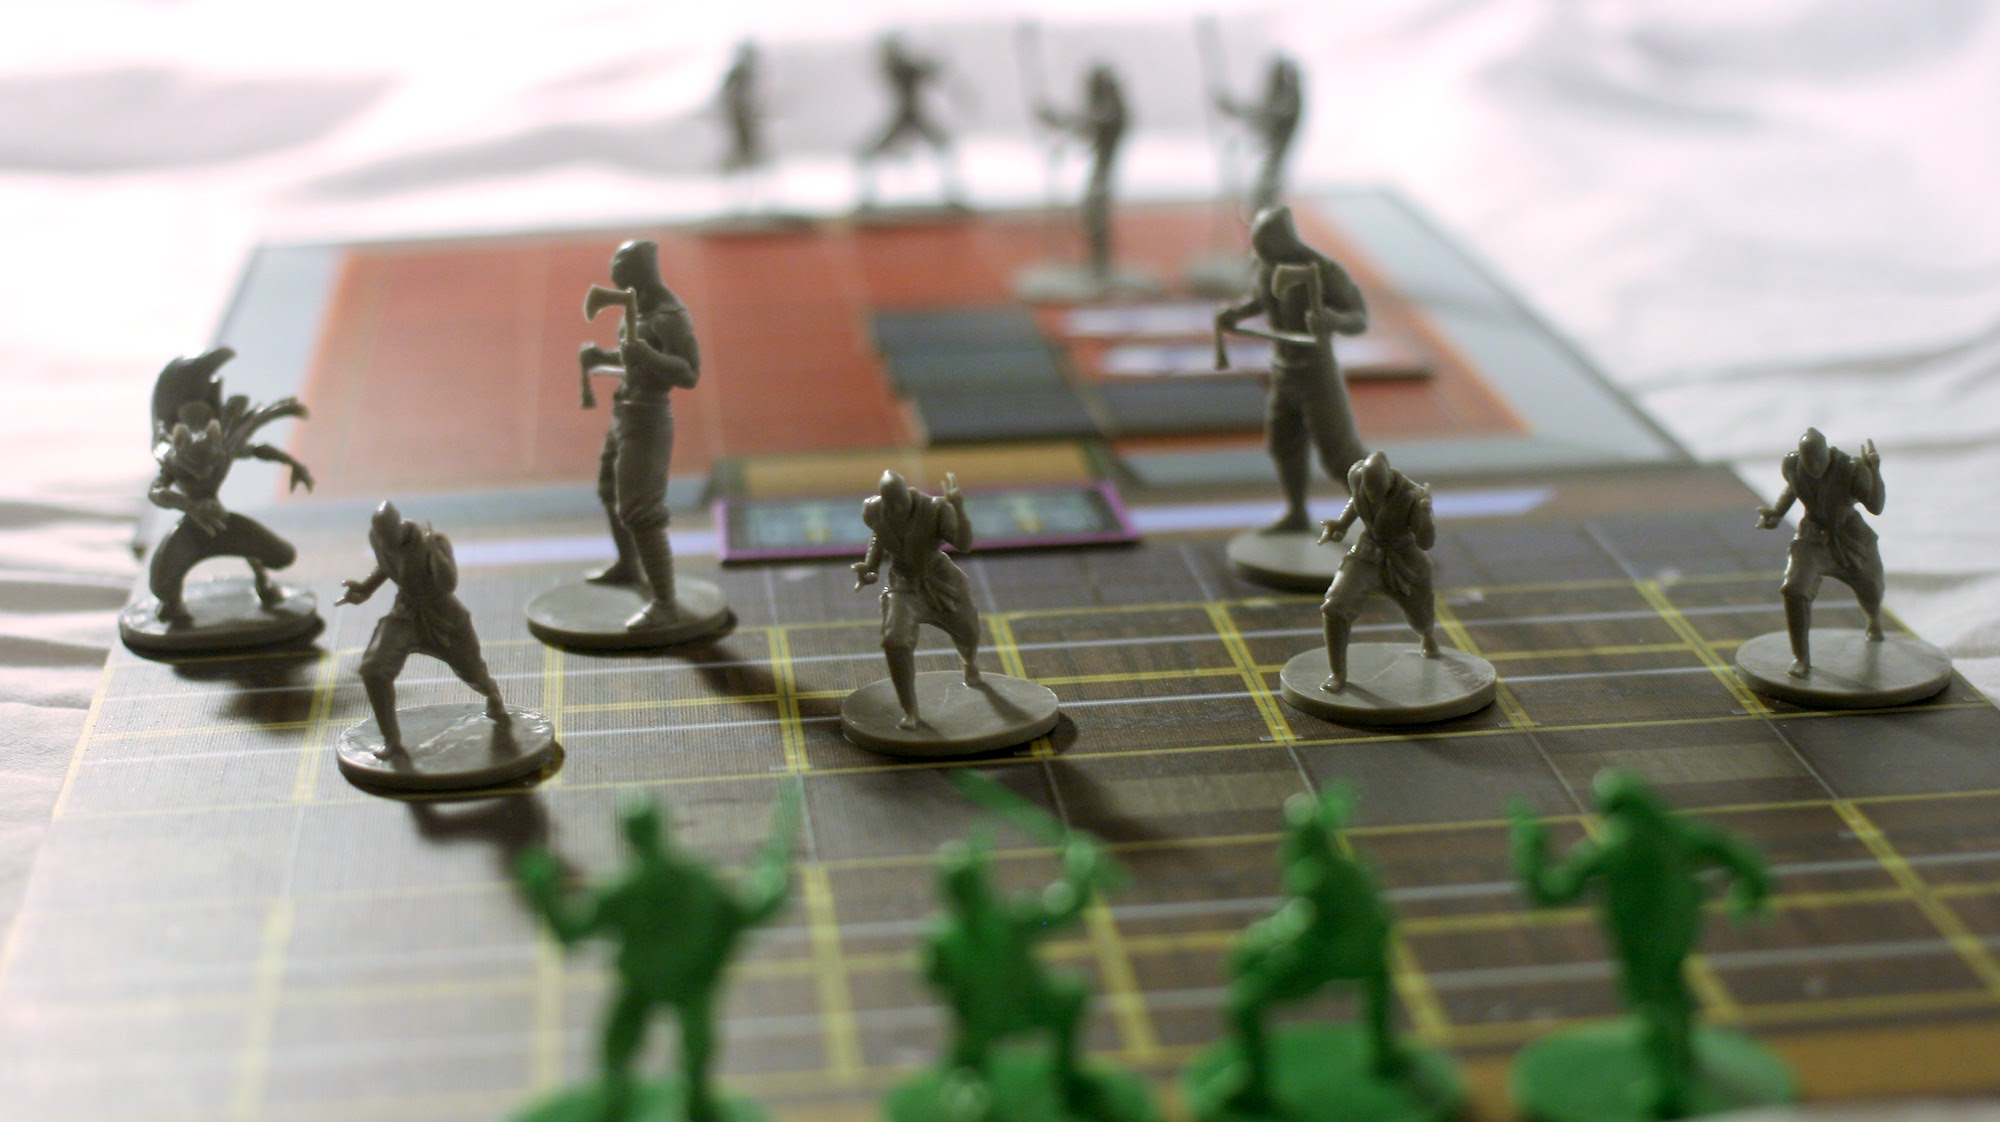 The game board setup for one of the scenarios.